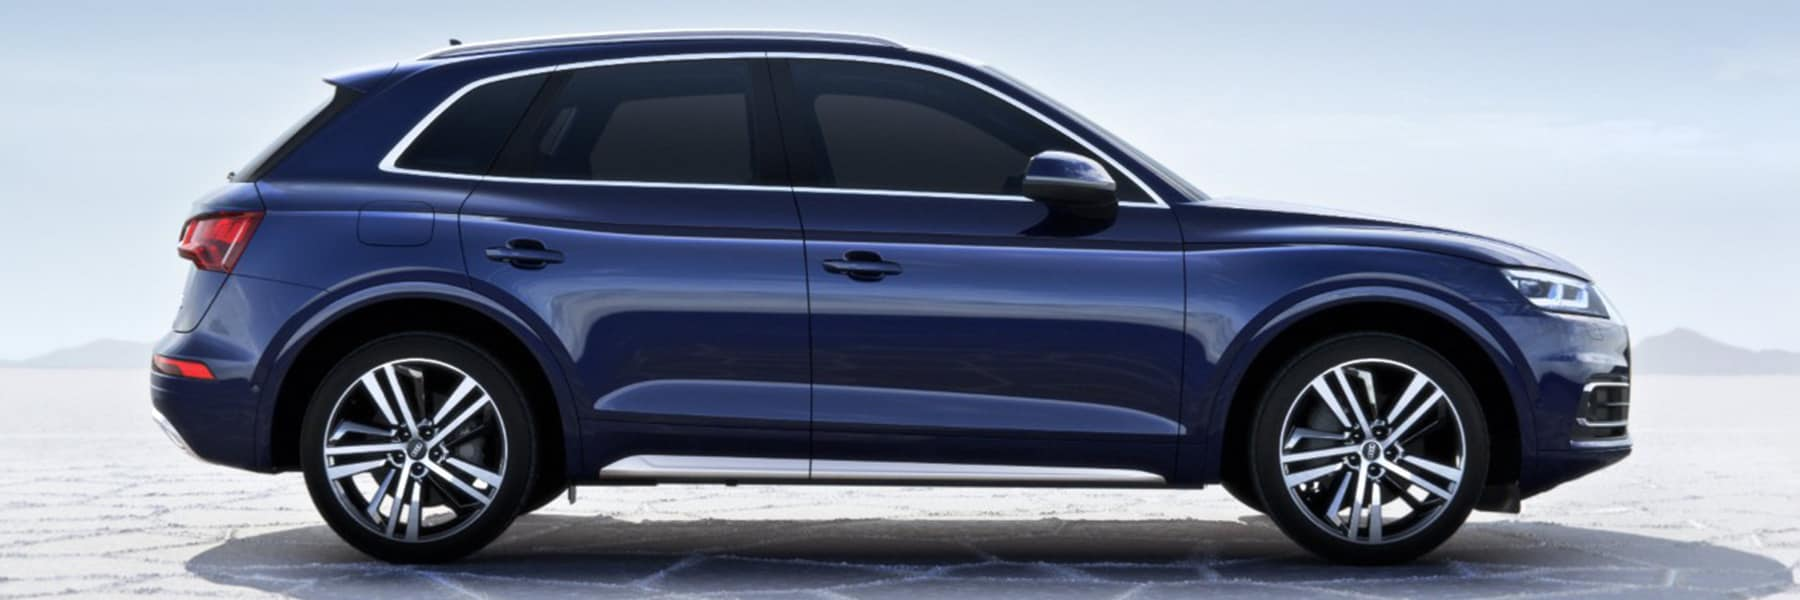 Discover the totally redesigned 2018 Audi Q5 at Audi Lauzon, in the Greater Montreal area!